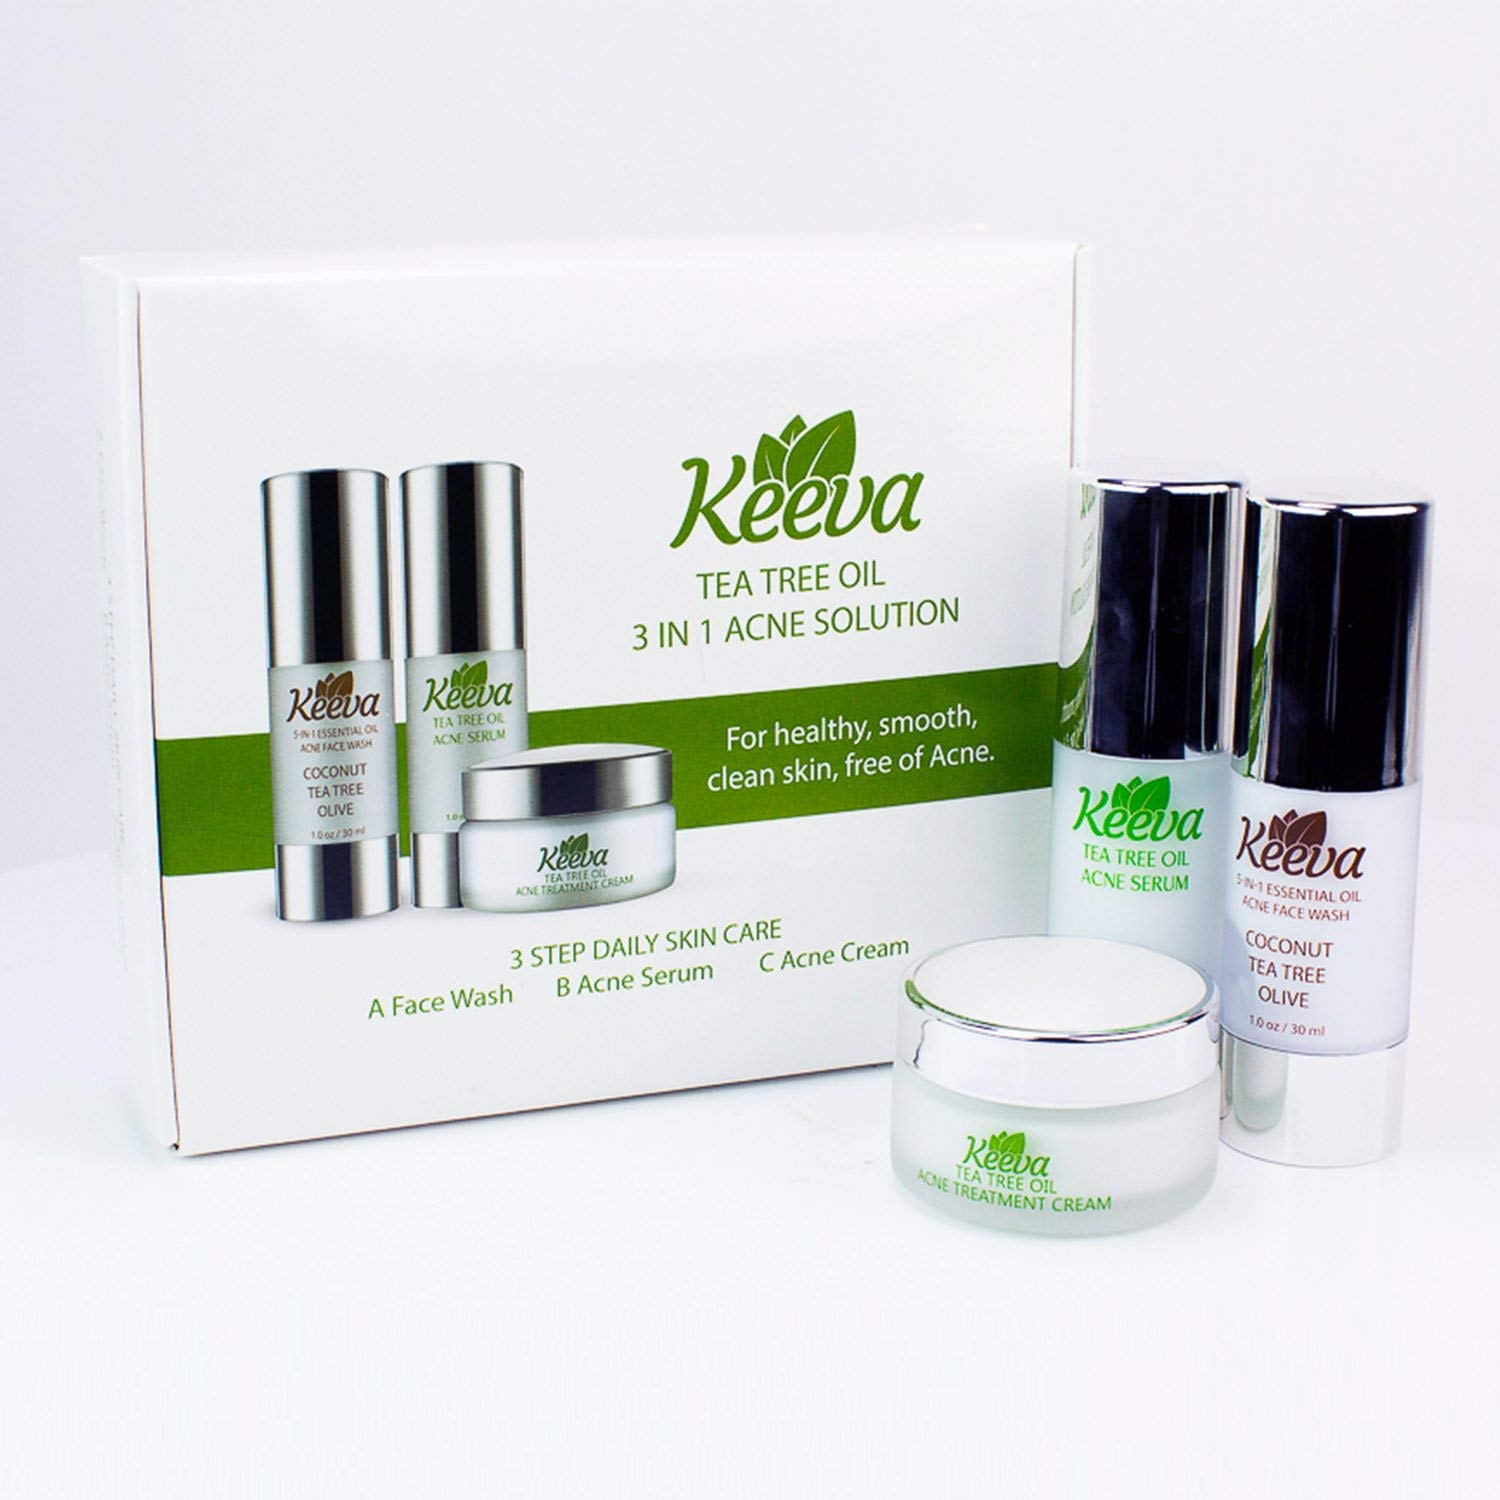 Get the Clear, Acne-FREE Skin You Deserve in Just 3 Days with Keeva's 7x Faster Organic Acne System. Includes Patented Acne Cream, Serum, Face Wash (3 in 1 Kit) by Keeva Organics